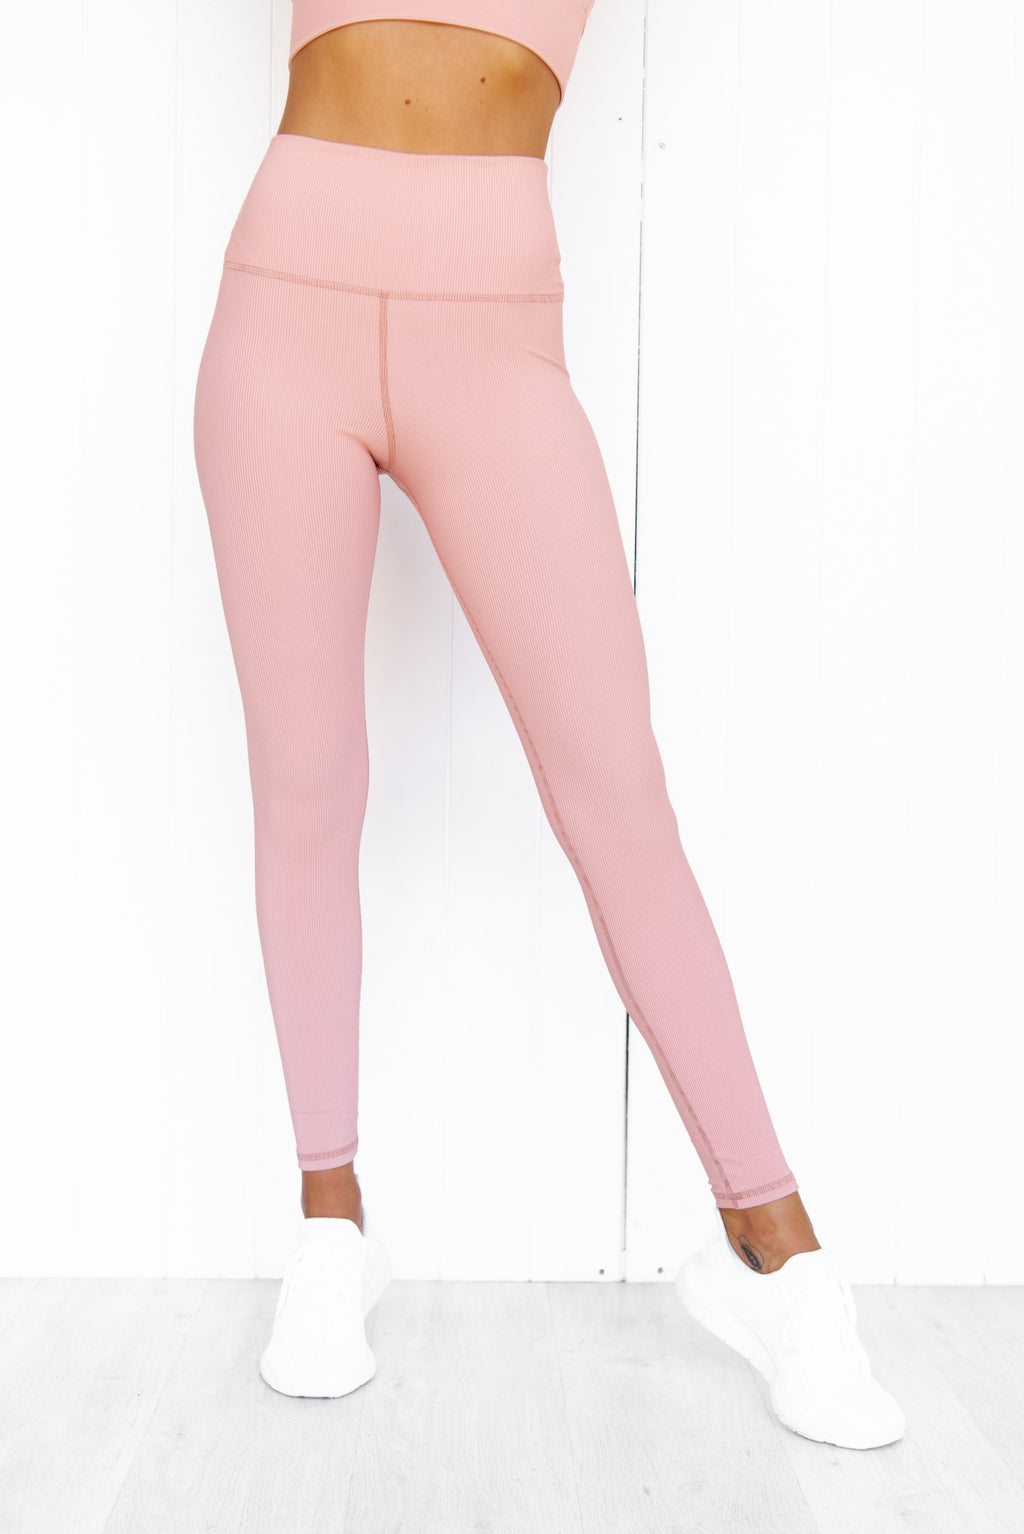 Ribbed High Waist Leggings - Pink - PURE DASH